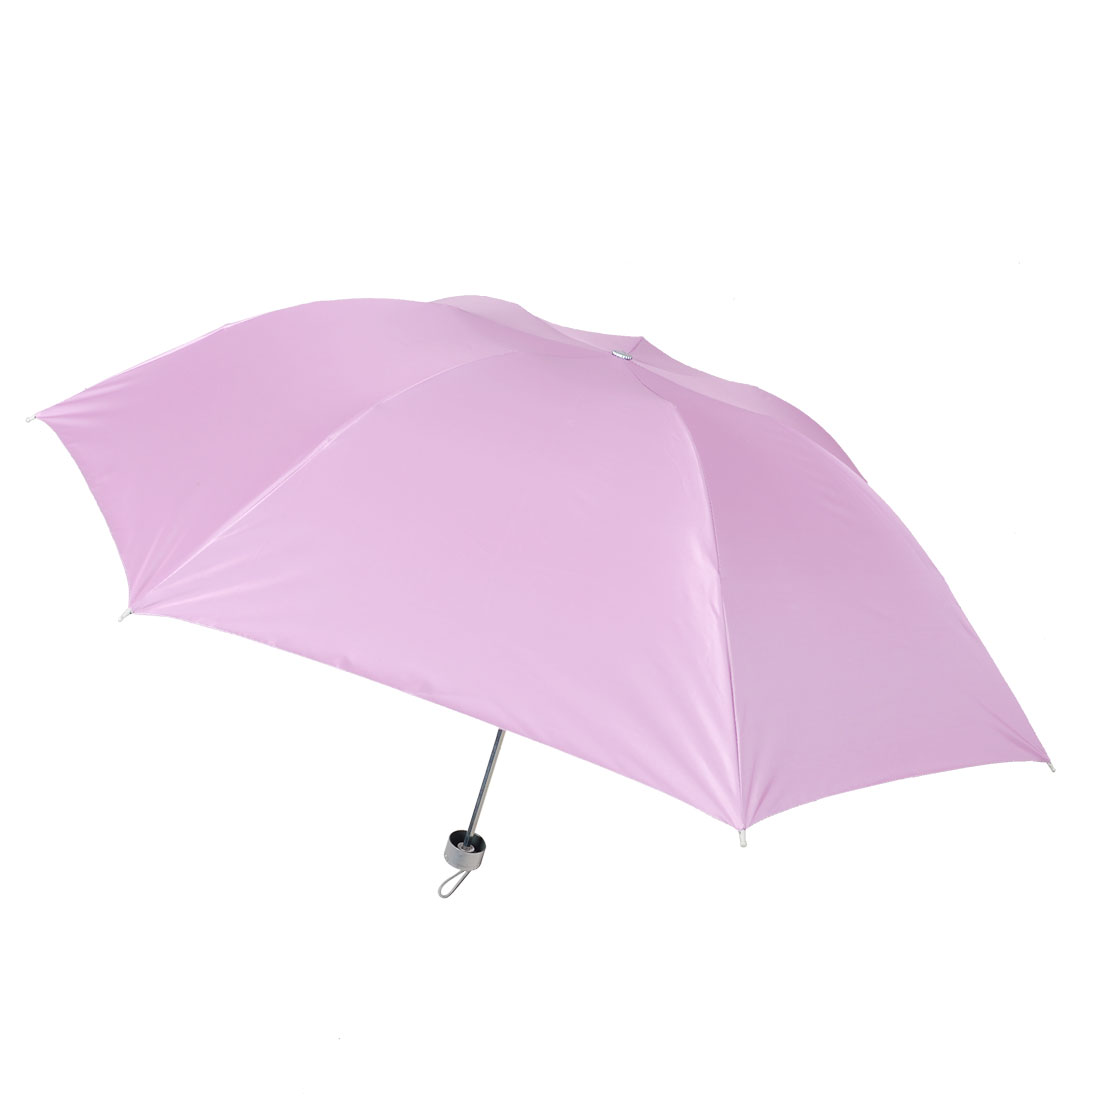 Plastic Grip 3 Sections Telescopic Tube Foldable Pink Umbrella